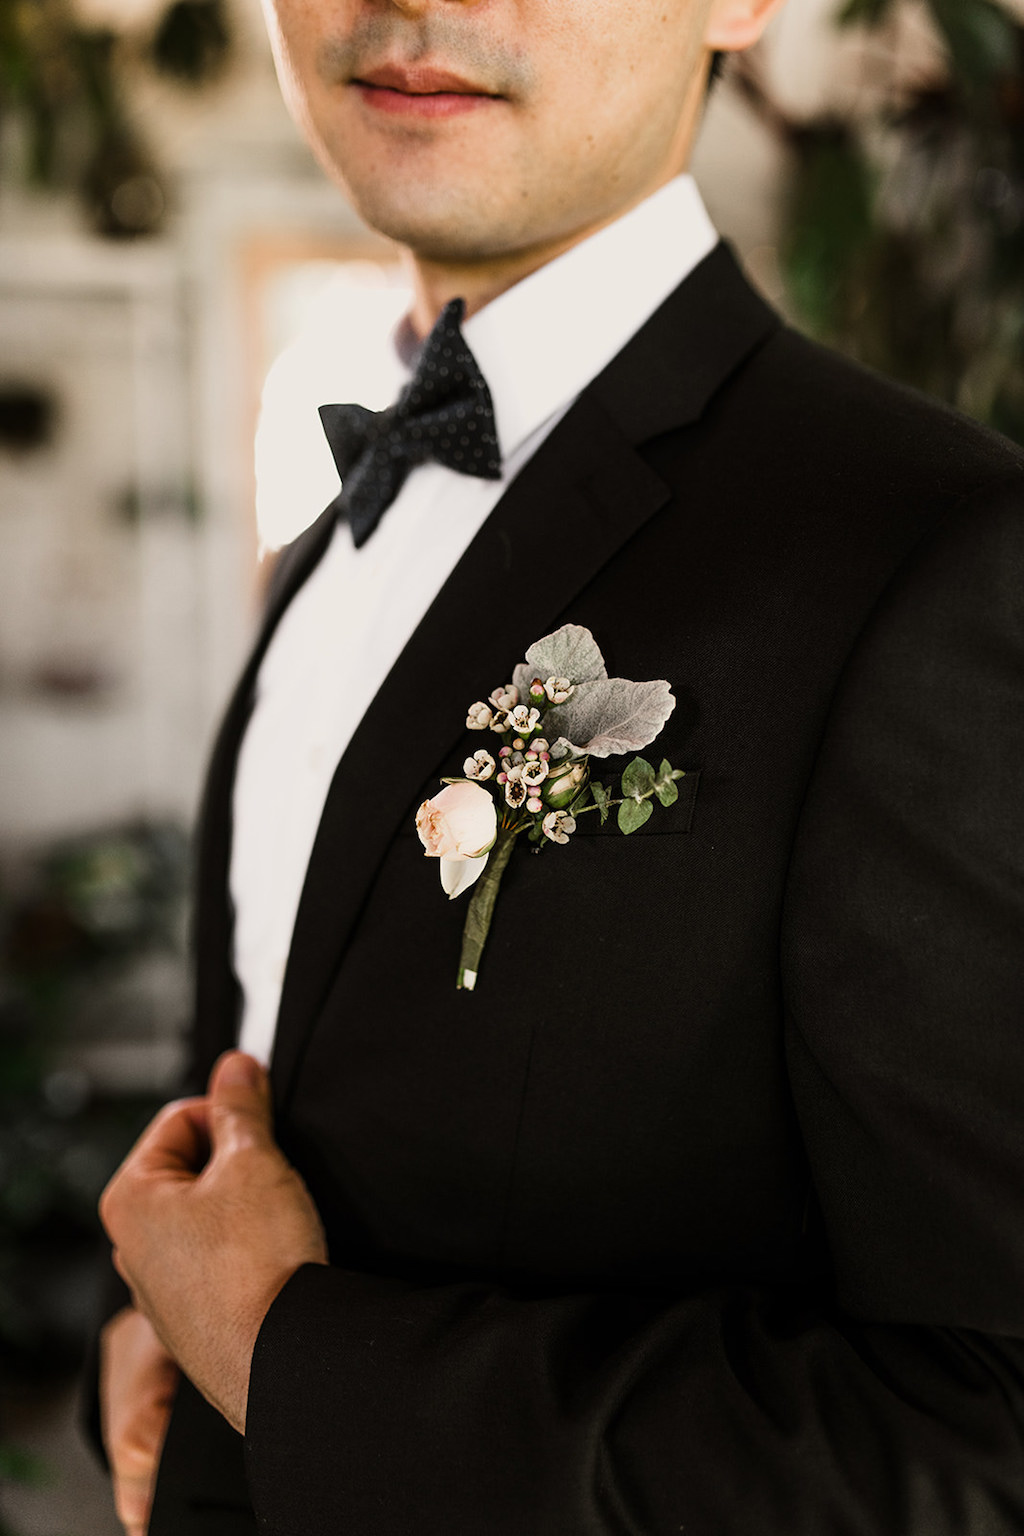 Interior Groom Portrait, wearing Black Tuxedo with Peach and Greenery Floral Boutonniere